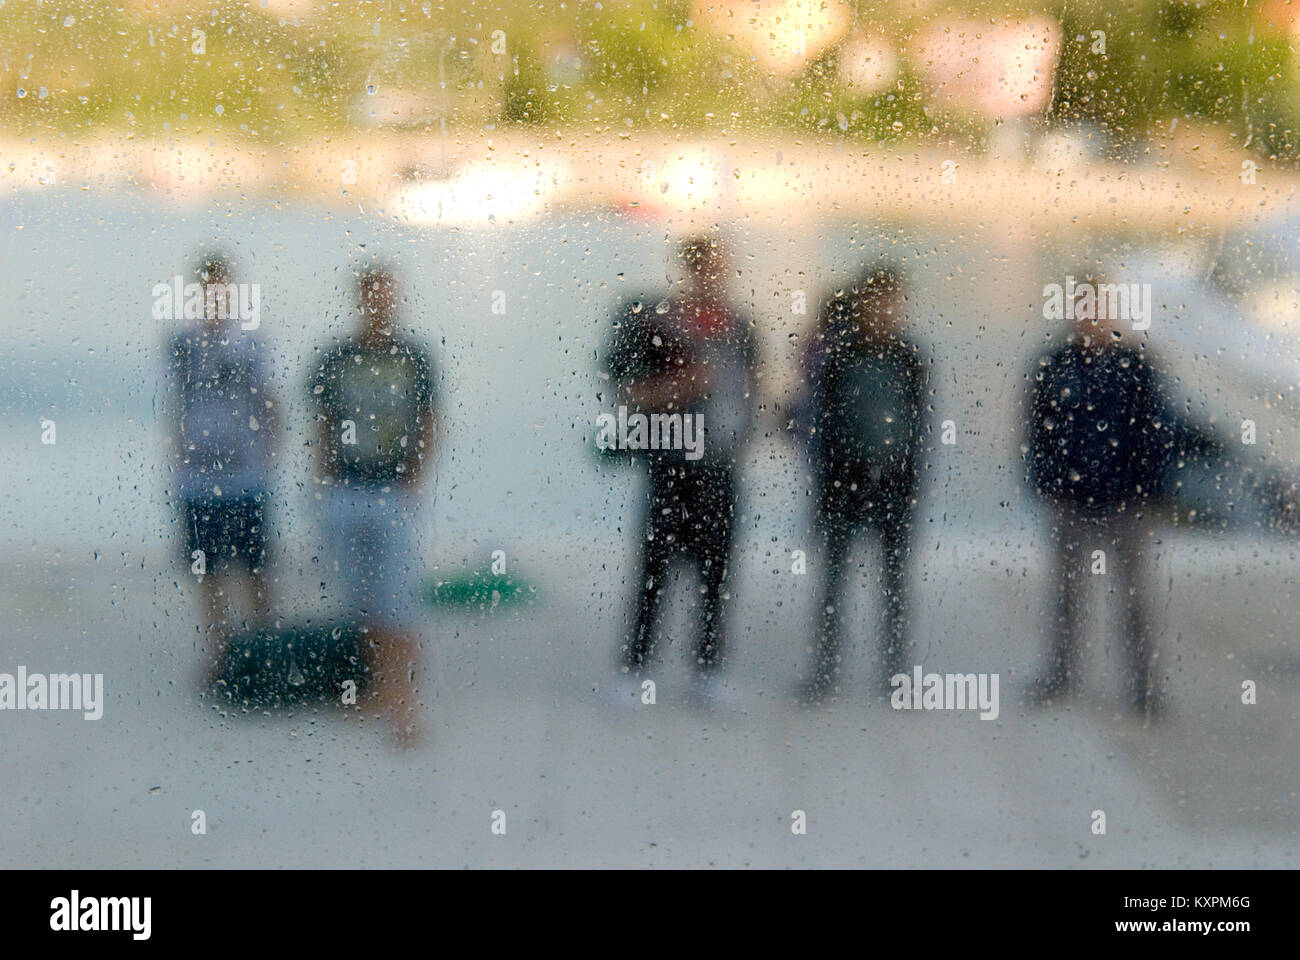 looking through a window covered in water droplets and condensation at a group fo five people standing with their - Stock Image